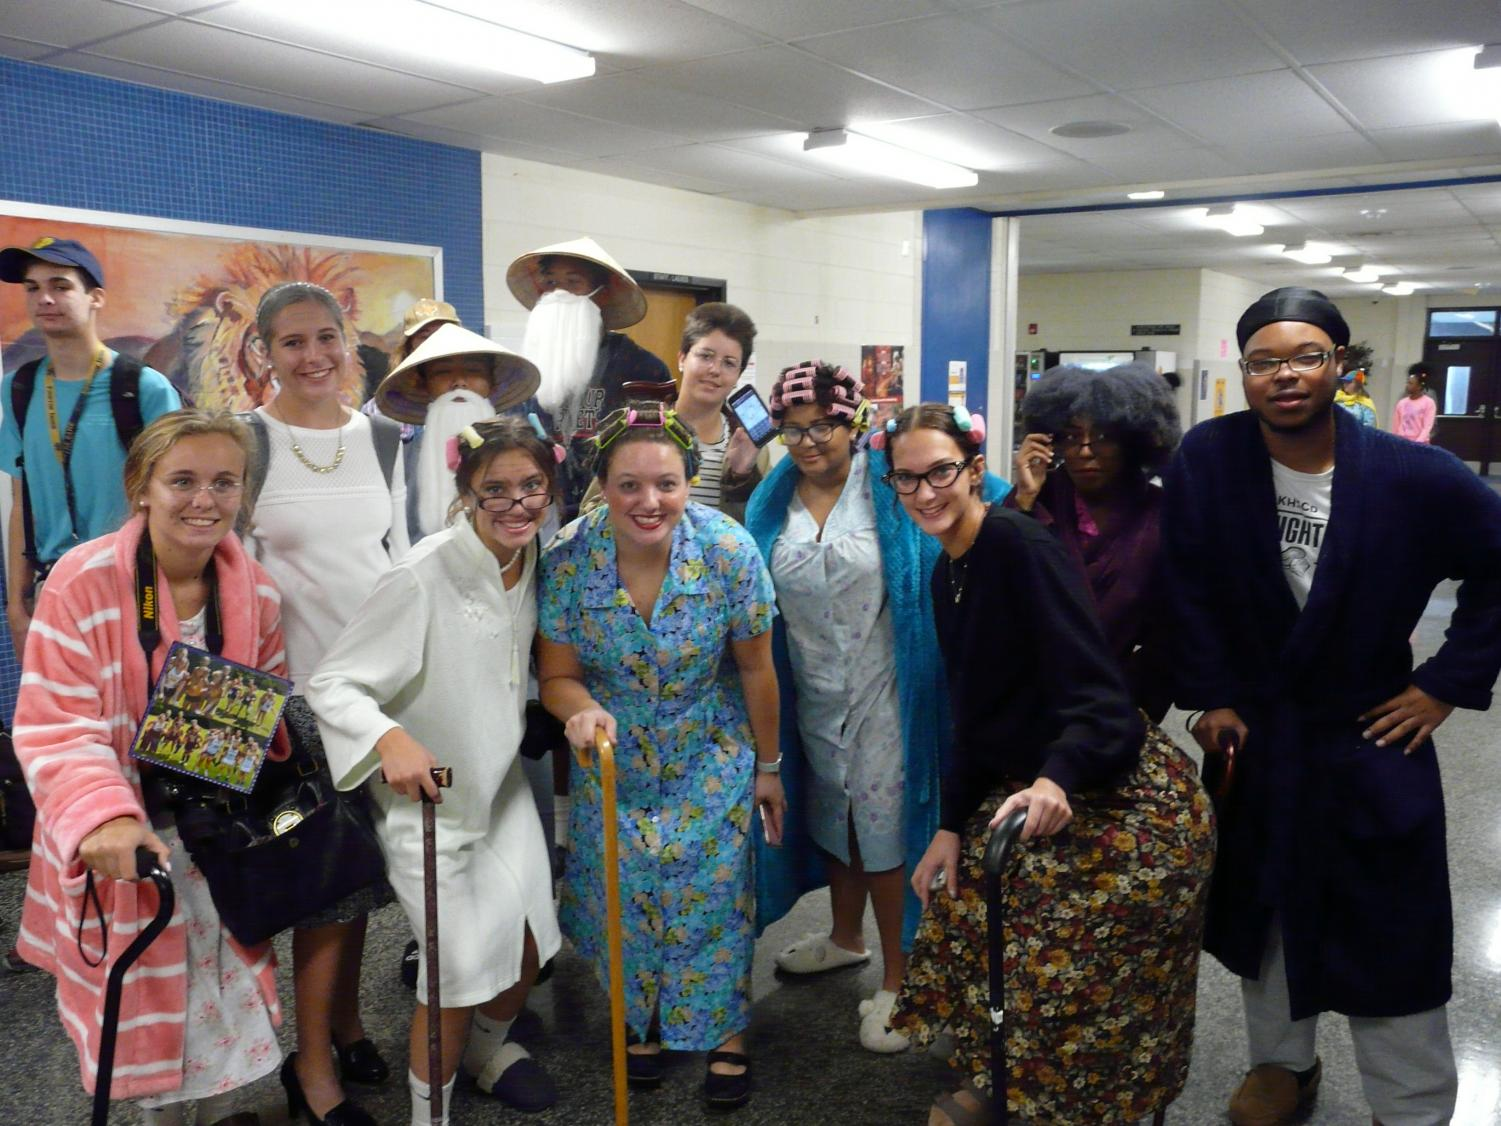 The+senior+class+grabbed+their+best+canes%2C+bathrobes%2C+and+curlers+for+the+day.